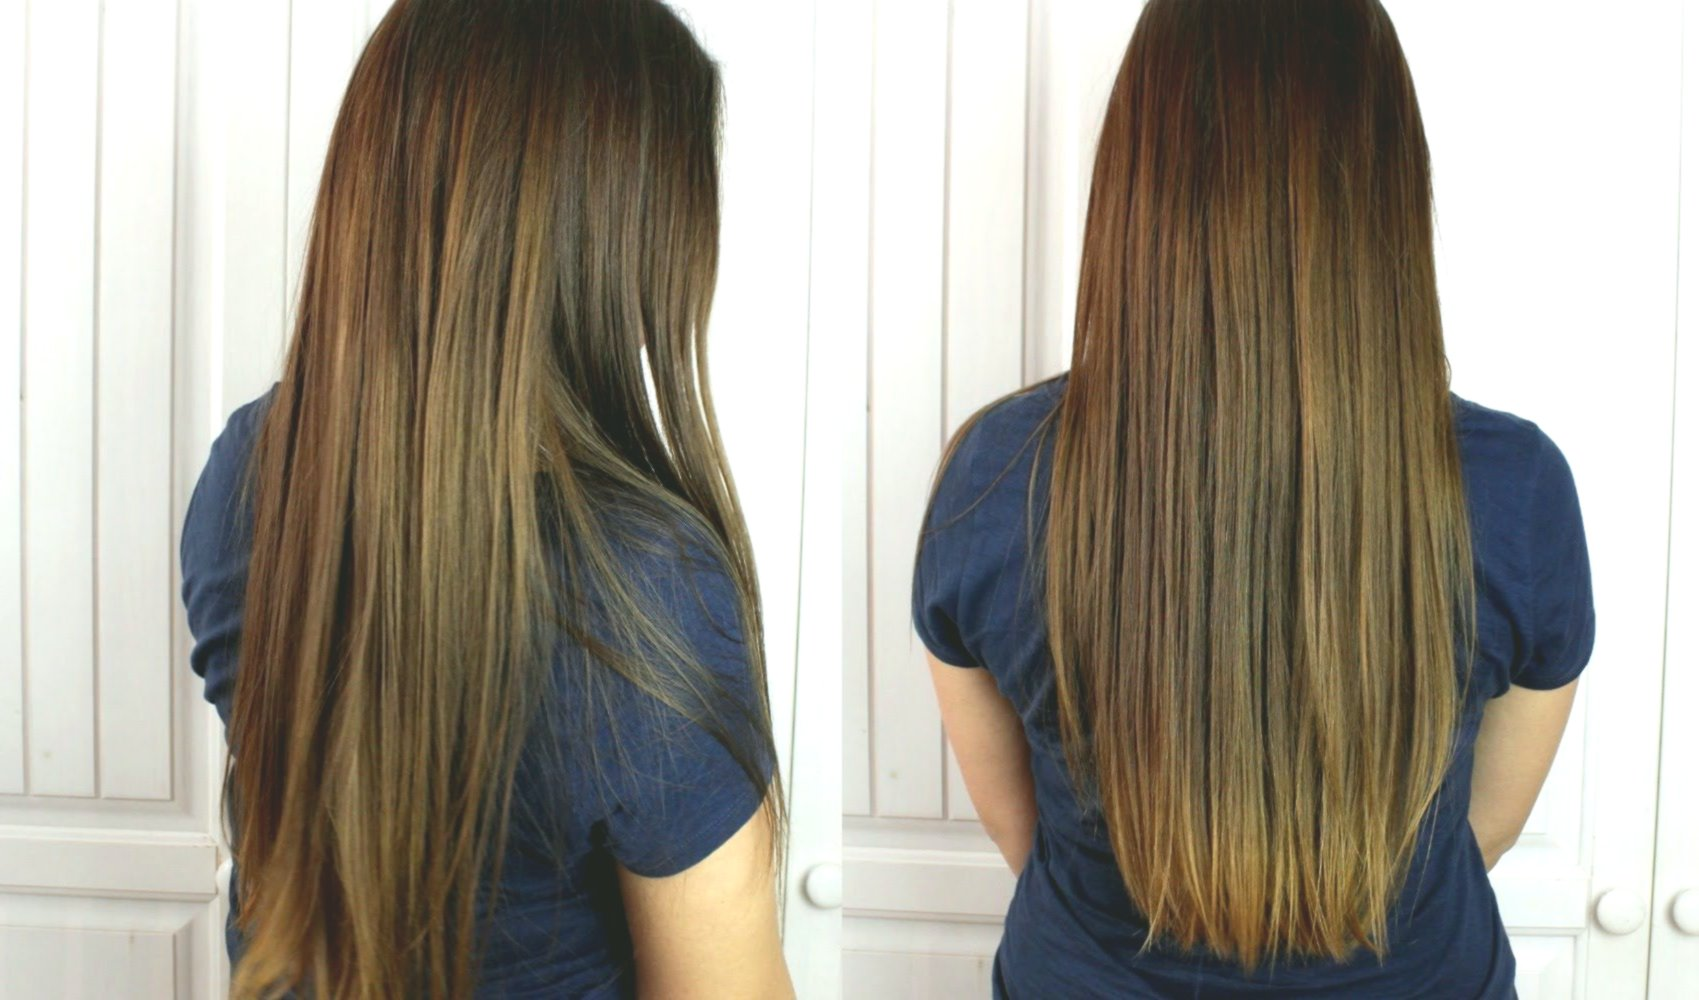 finest extremely long hair online-Stylish Extremely Long Hair Inspiration